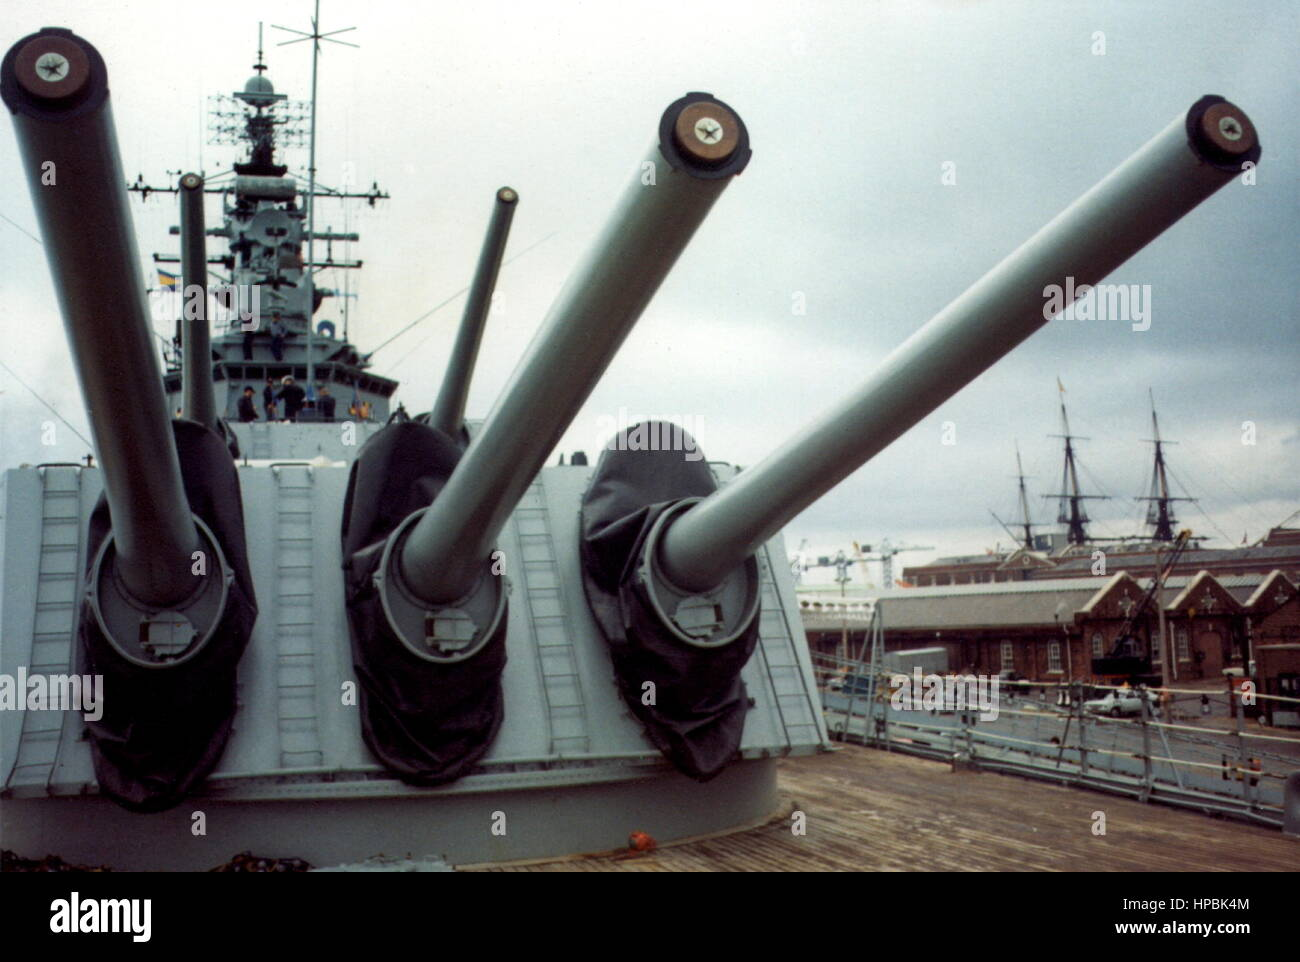 AJAXNETPHOTO.1973.PORTSMOUTH, ENGLAND. - BIG GUNS - FORWARD GUN TURRETS OF THE BATTLECRUISER USS NEWPORT NEWS.  - Stock Image